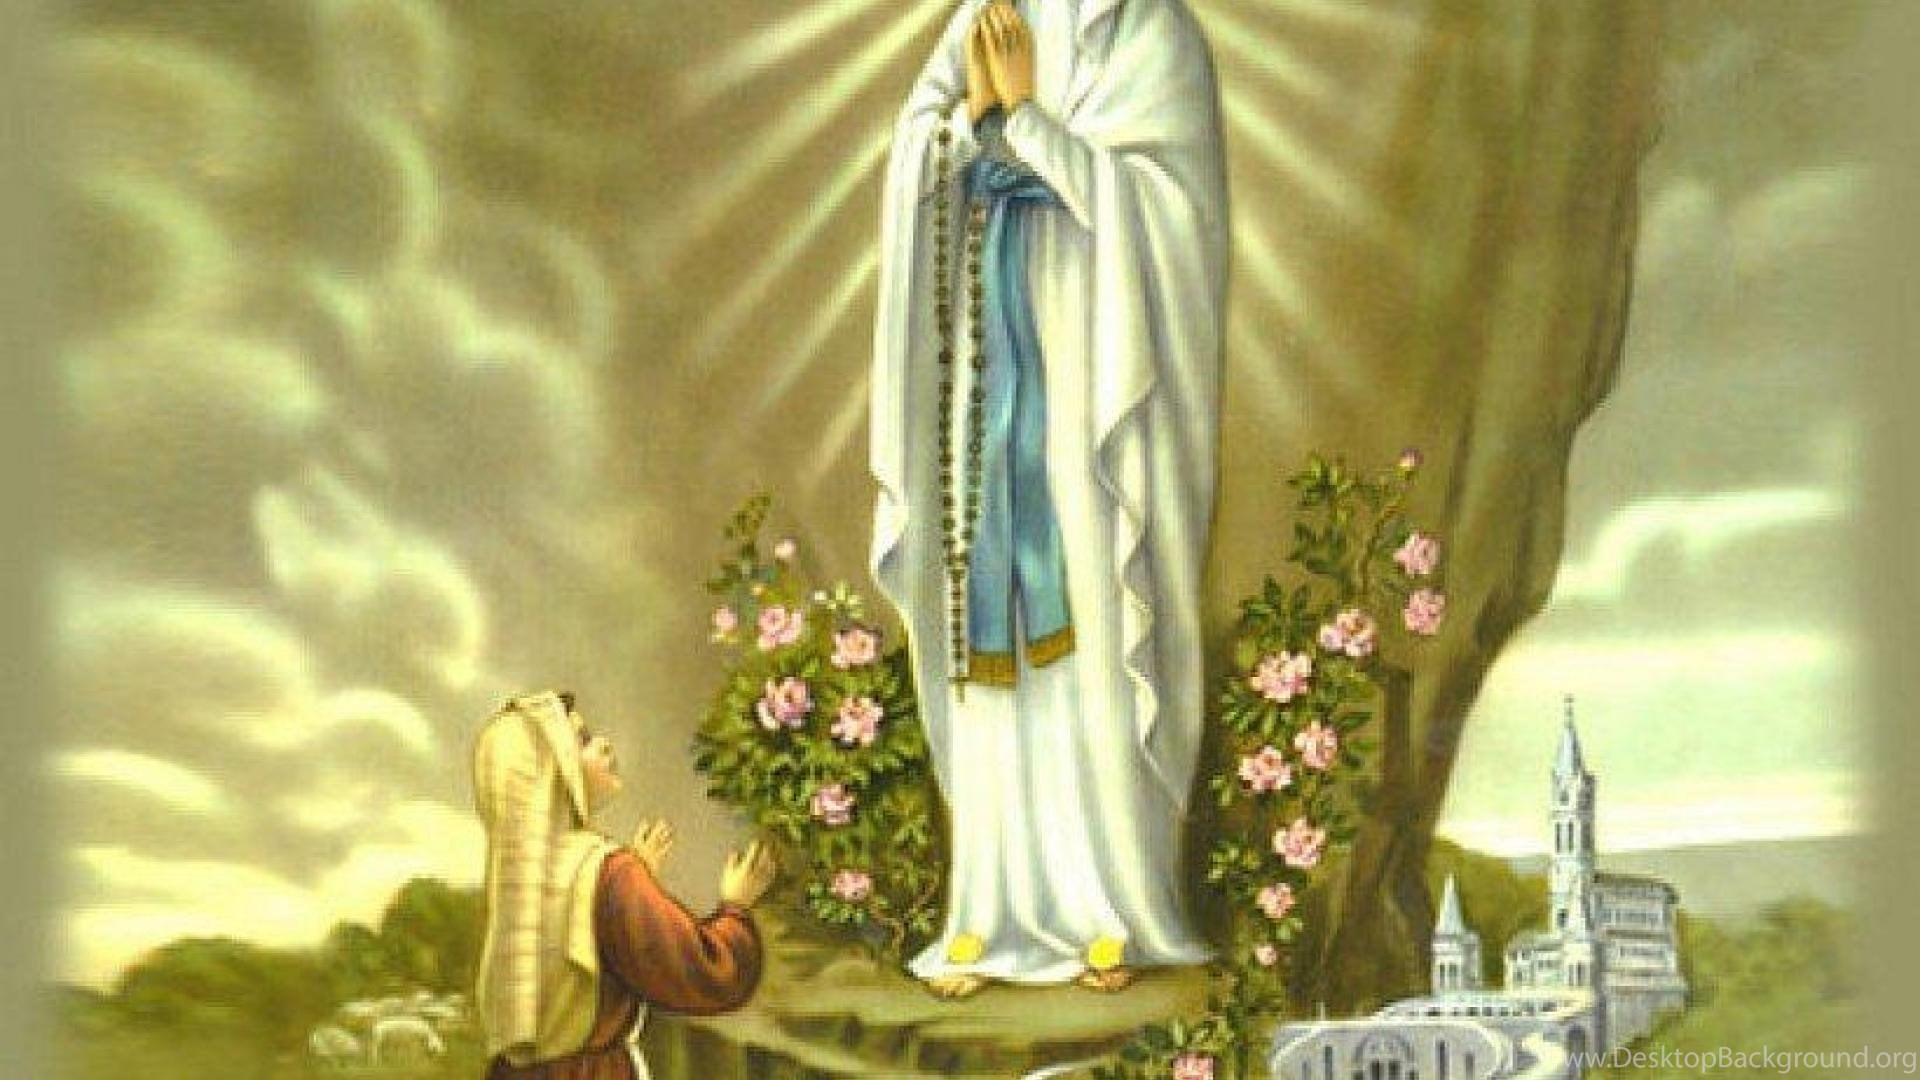 Jesus Christ 3d Wallpaper Download Wallpapers Of Mother Mary 55 Images